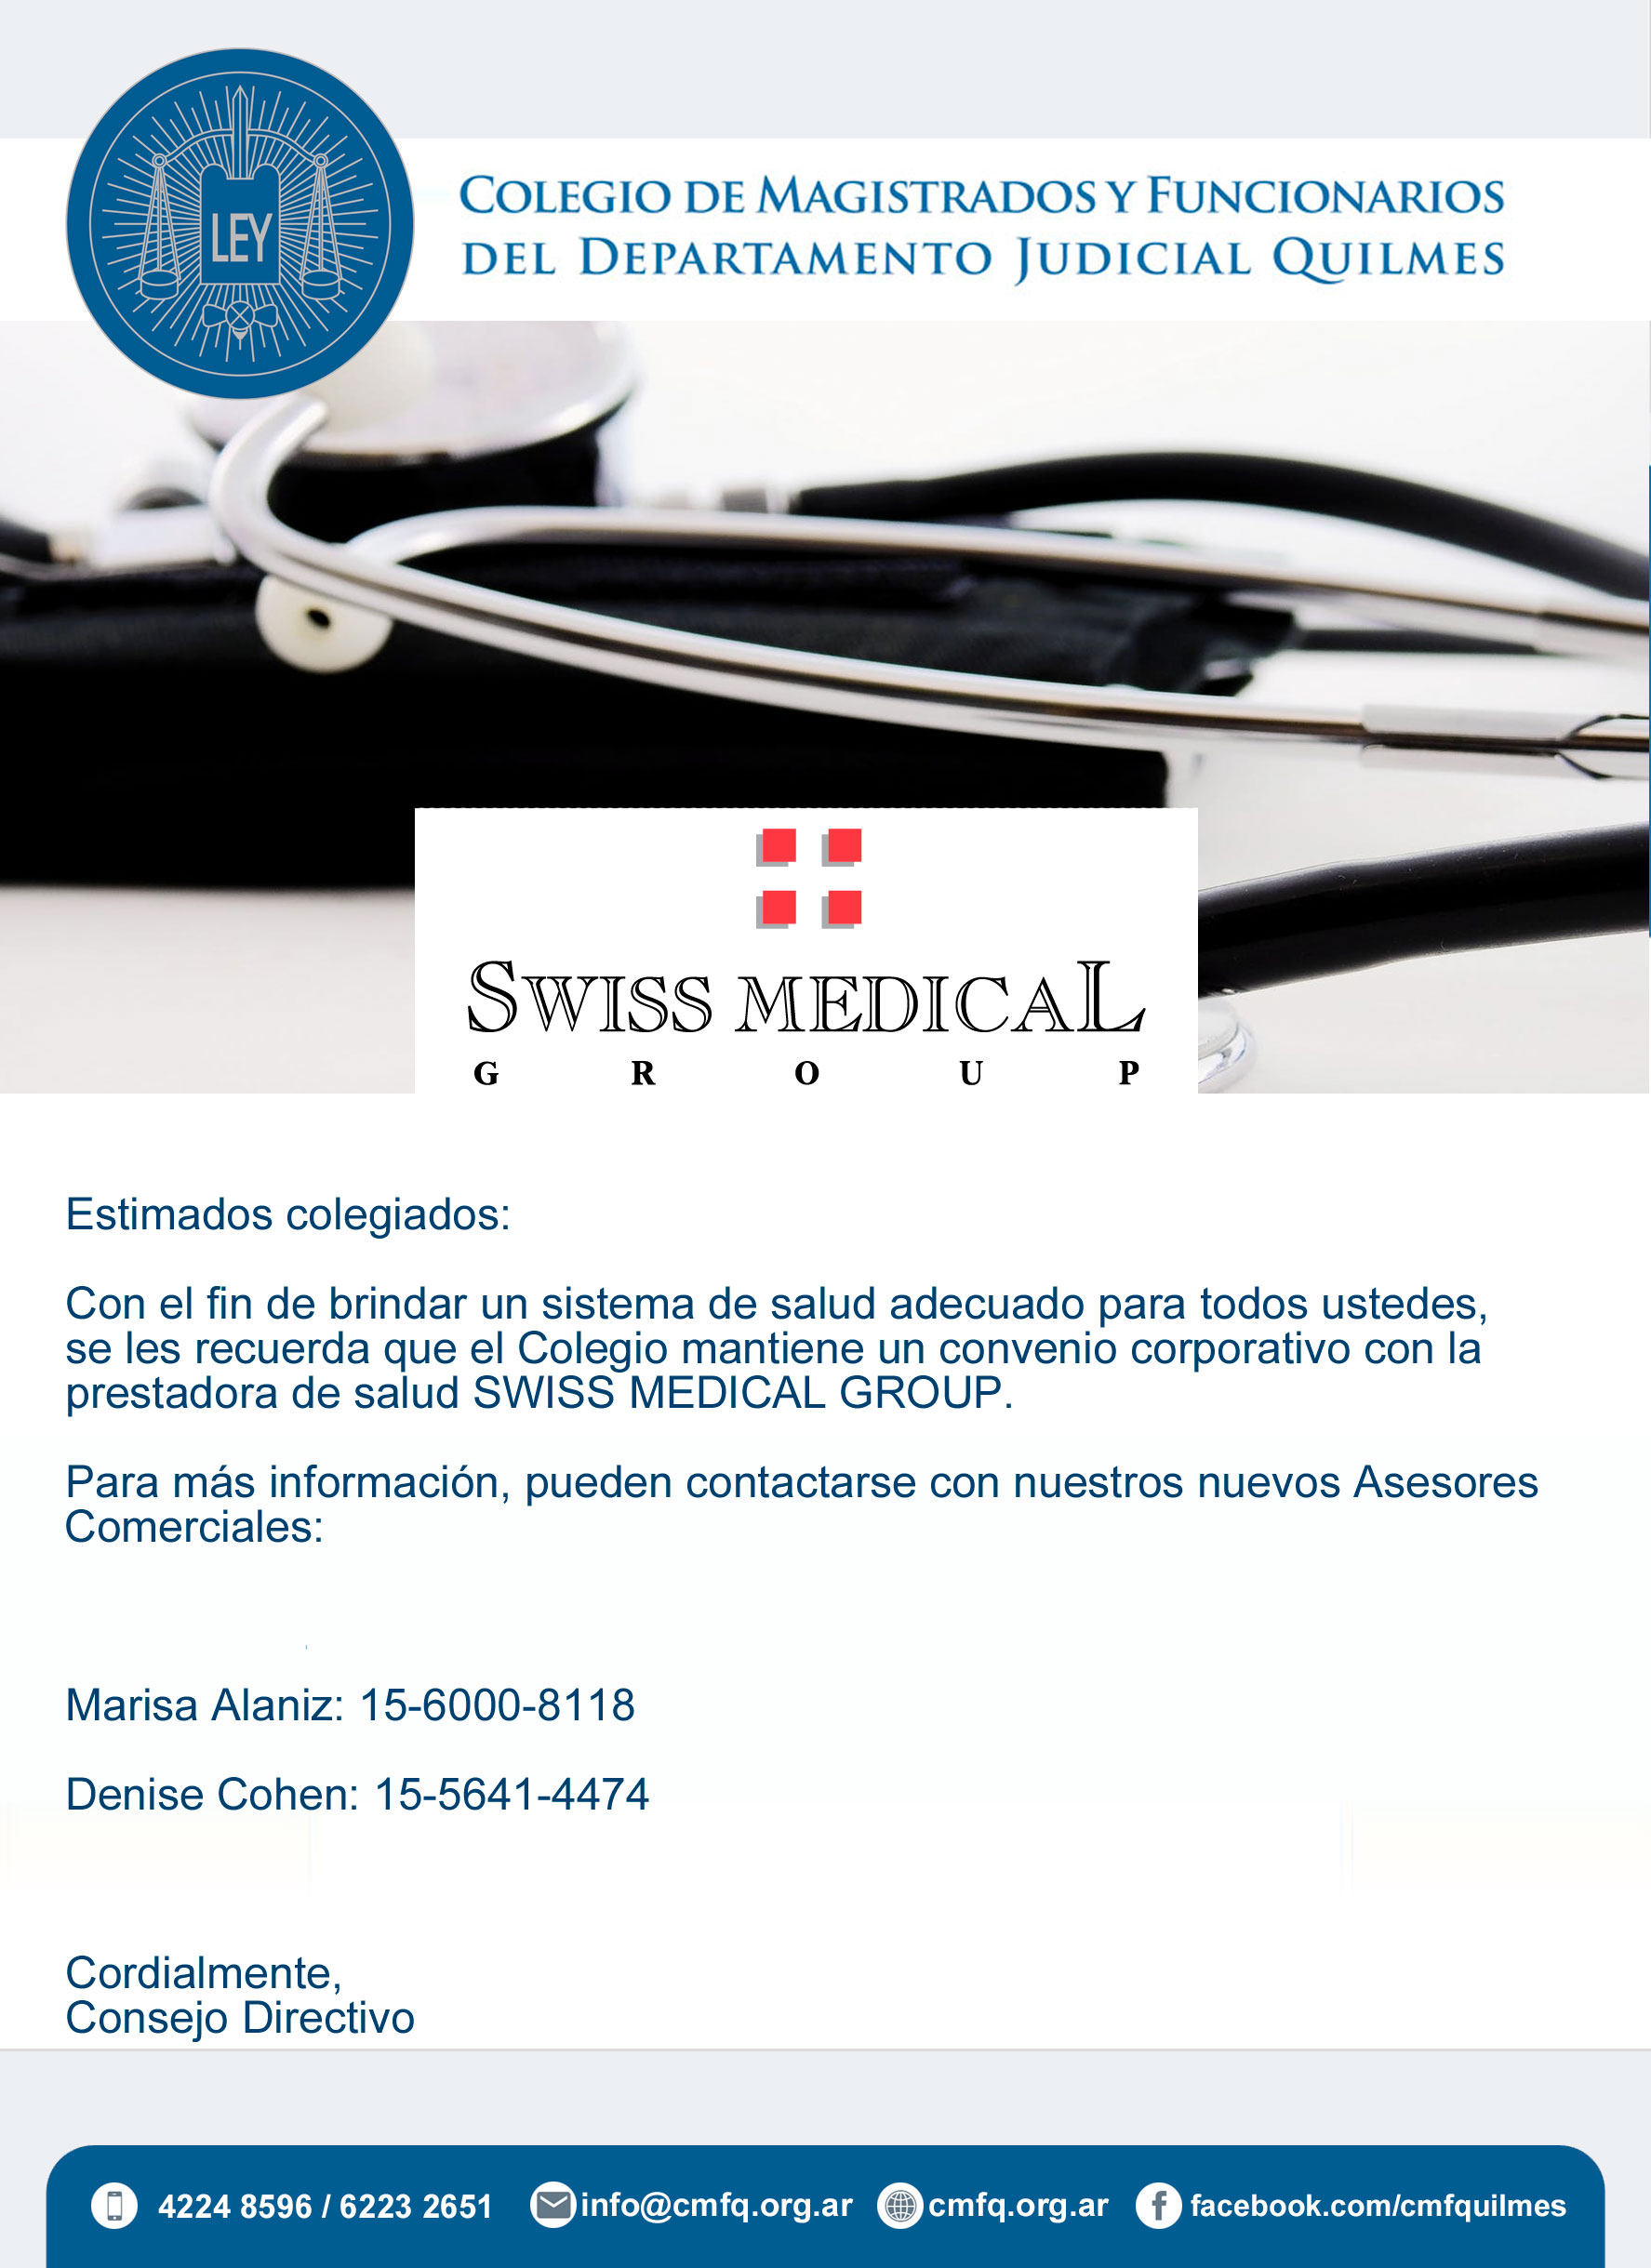 SWISS MEDICAL GROUP//Convenio corporativo